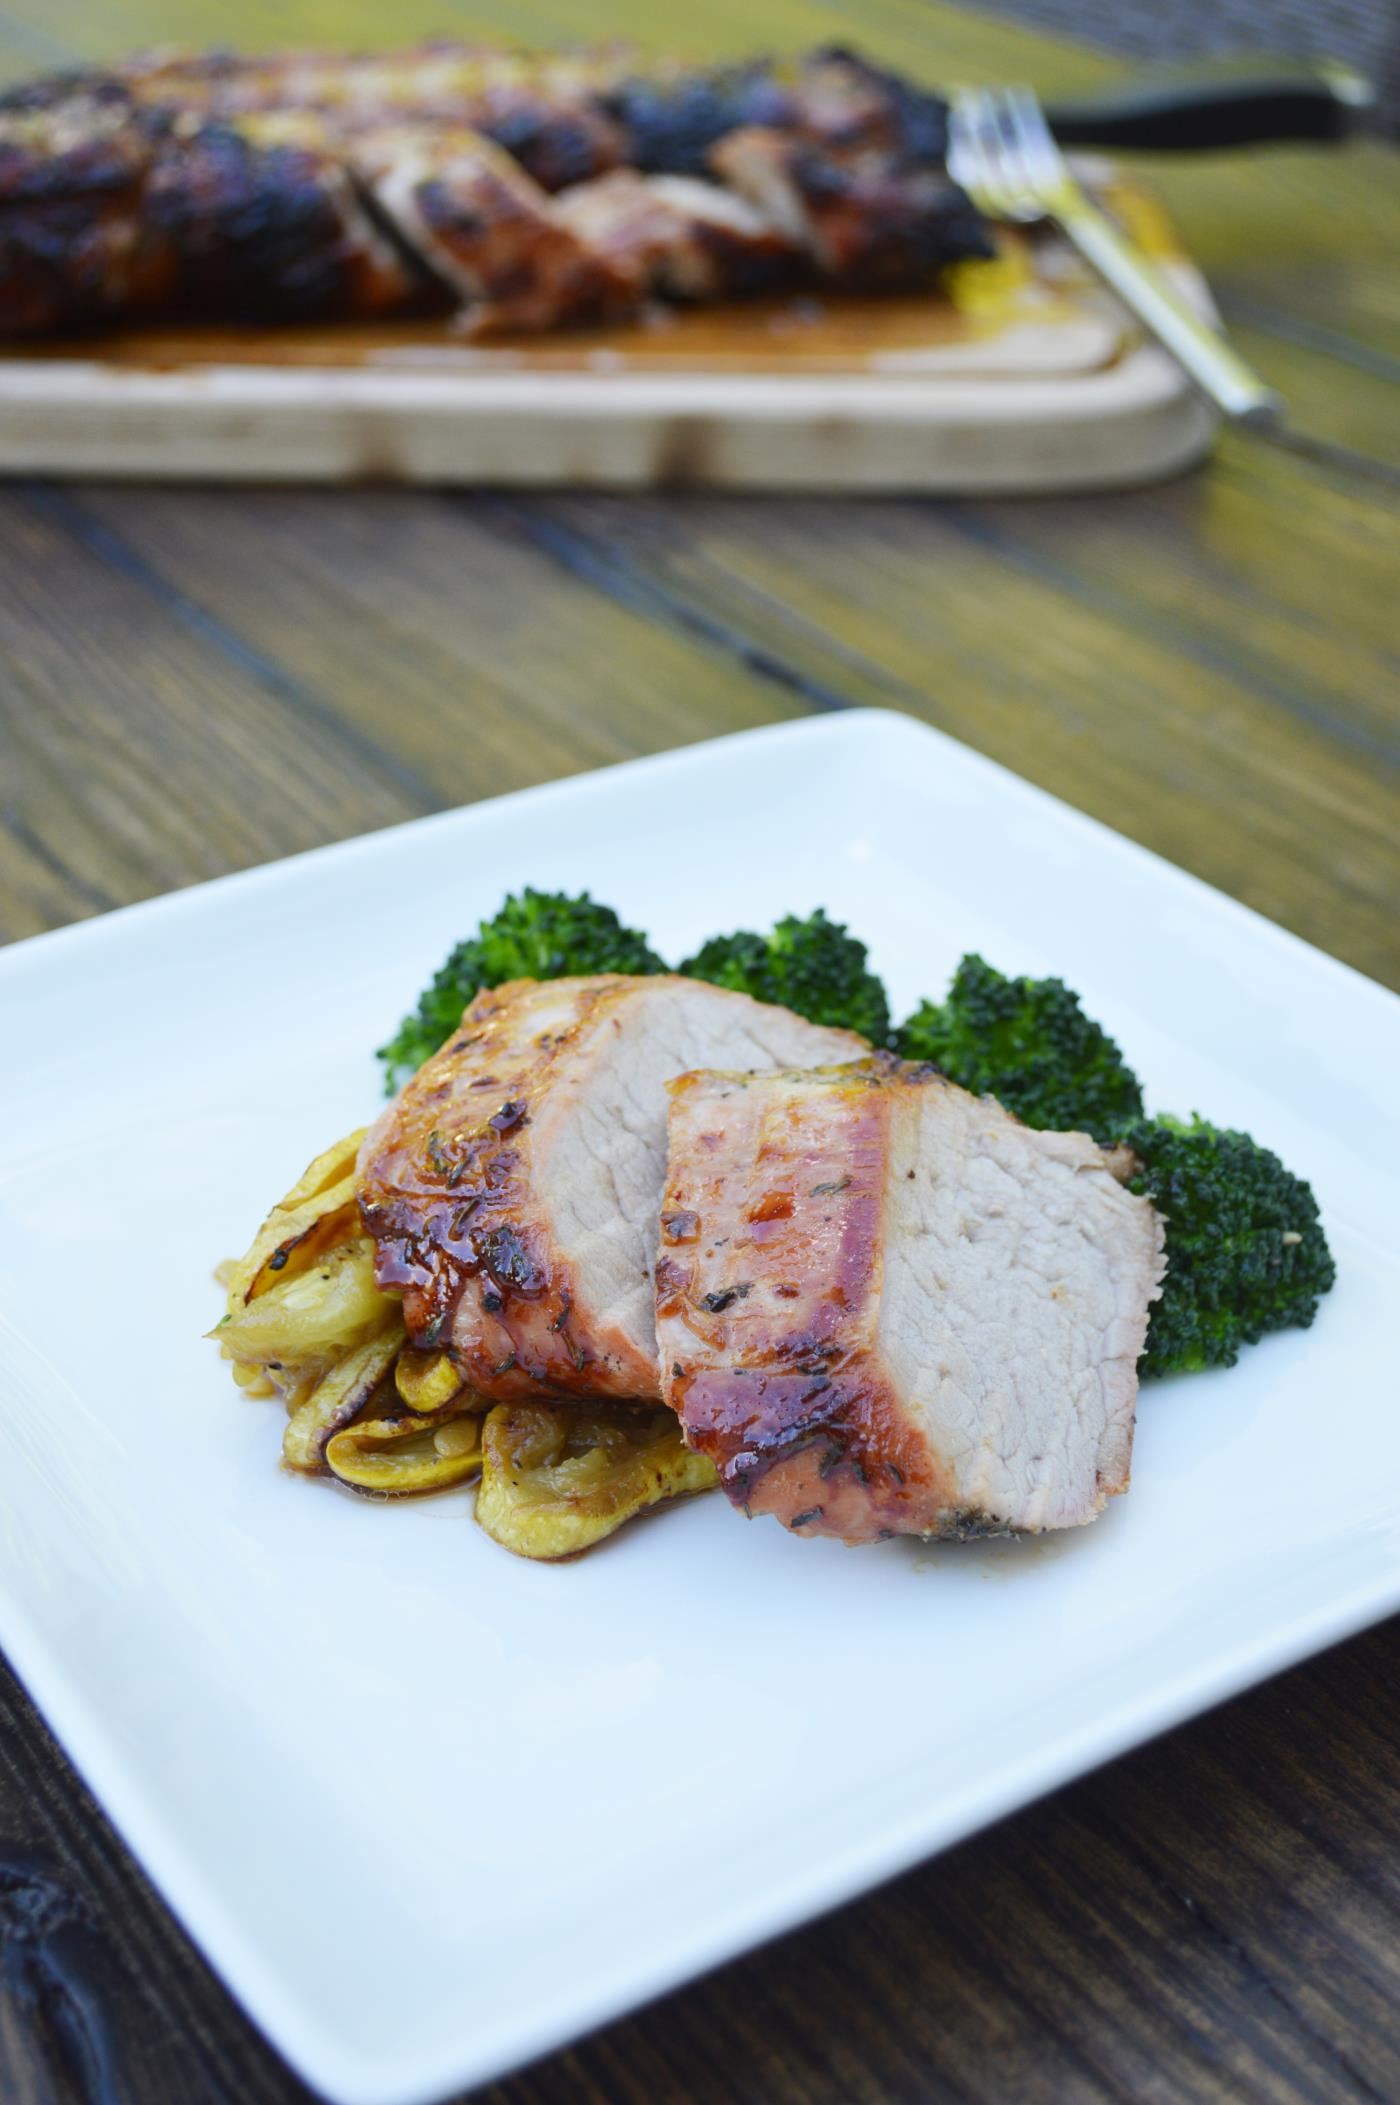 Pork loin rotisserie recipe